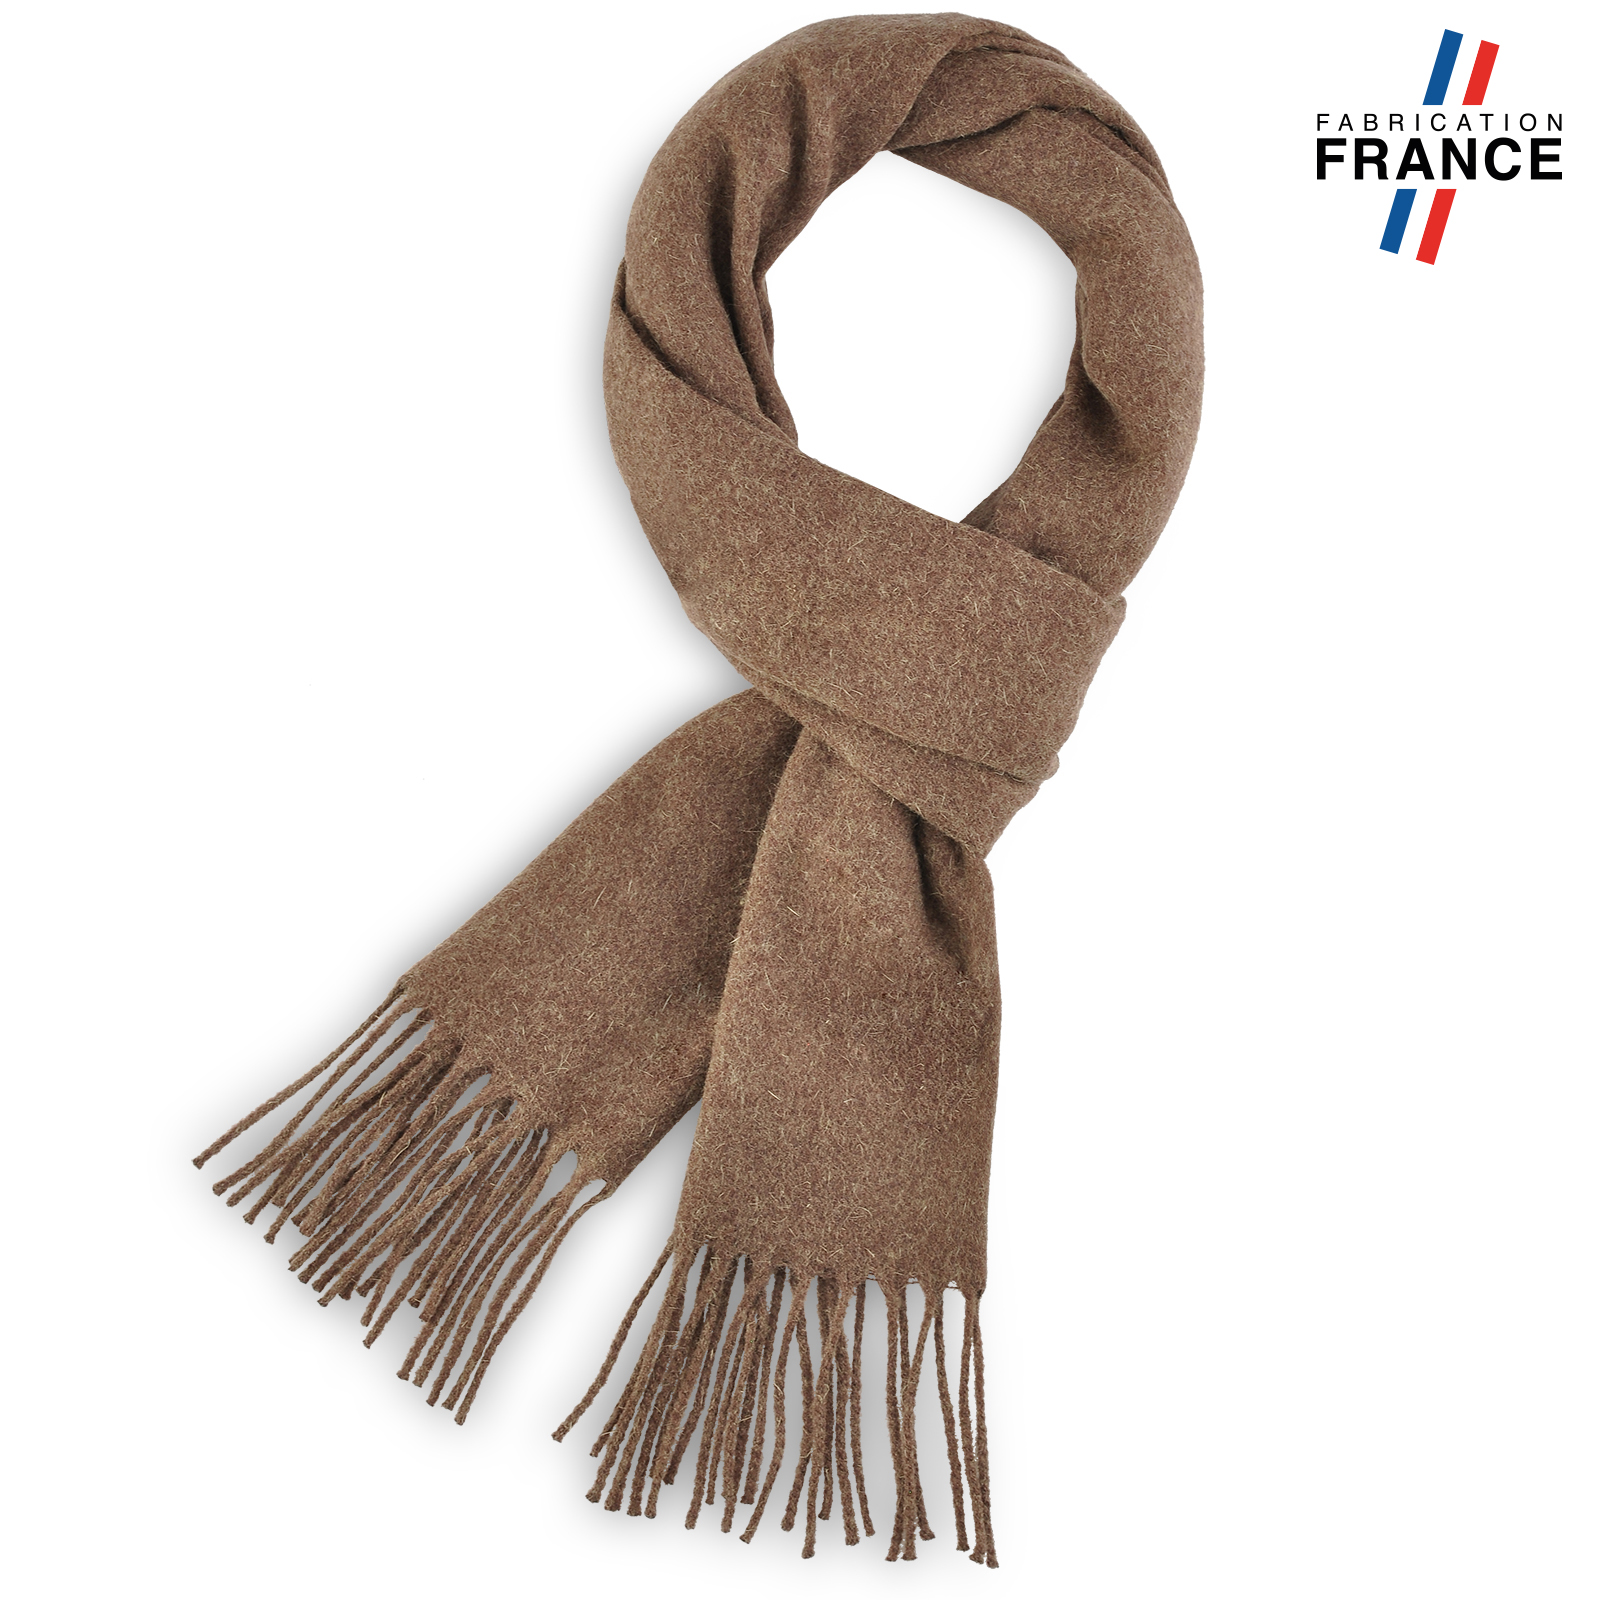 AT-03228-F16-echarpe-angora-taupe-fabriquee-en-france